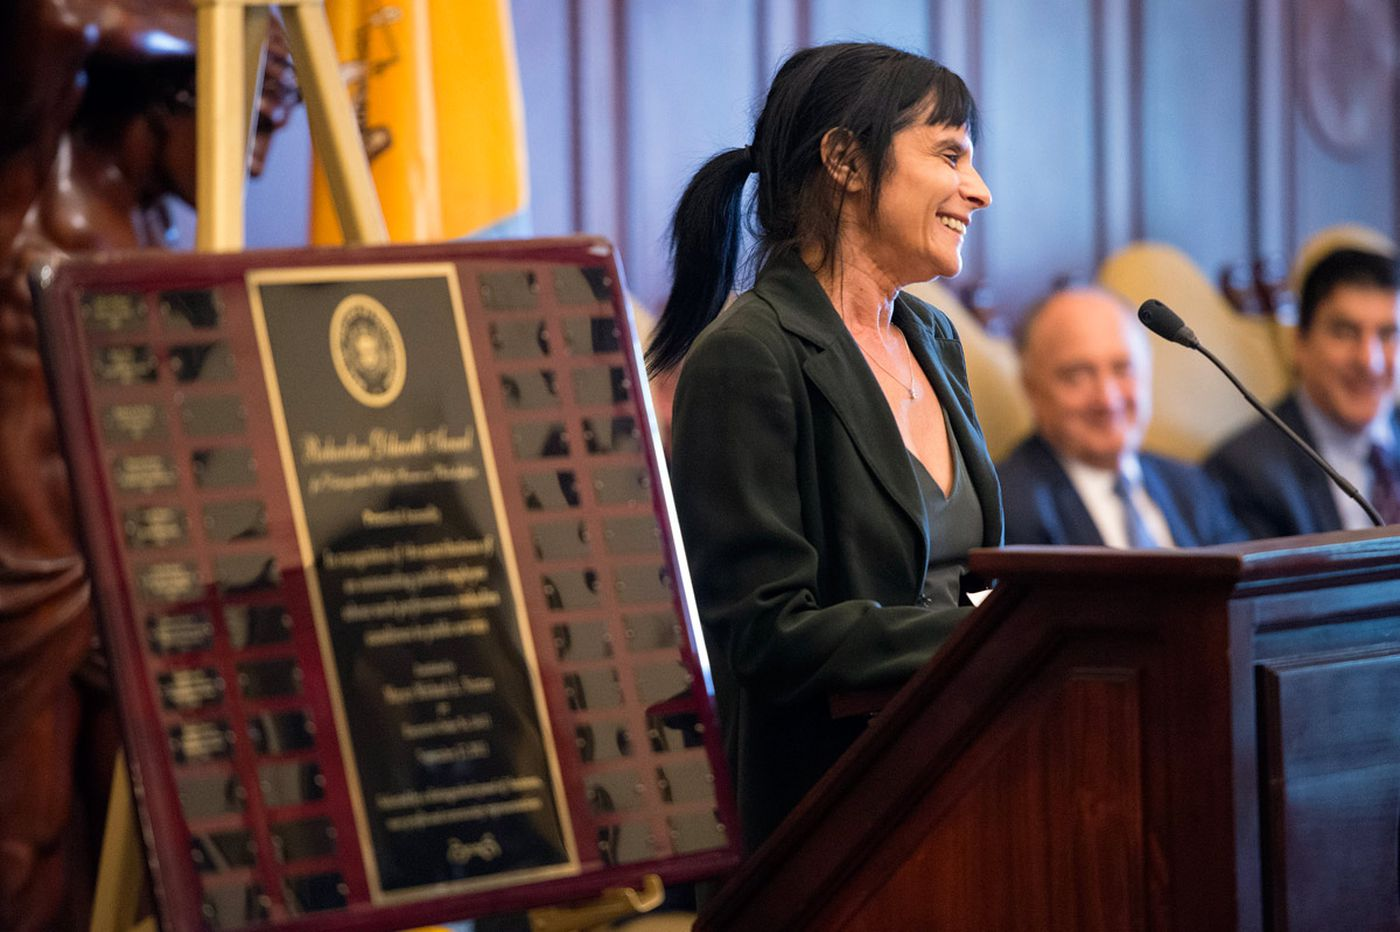 The Dilworth Awards: City honors three of its best and brightest